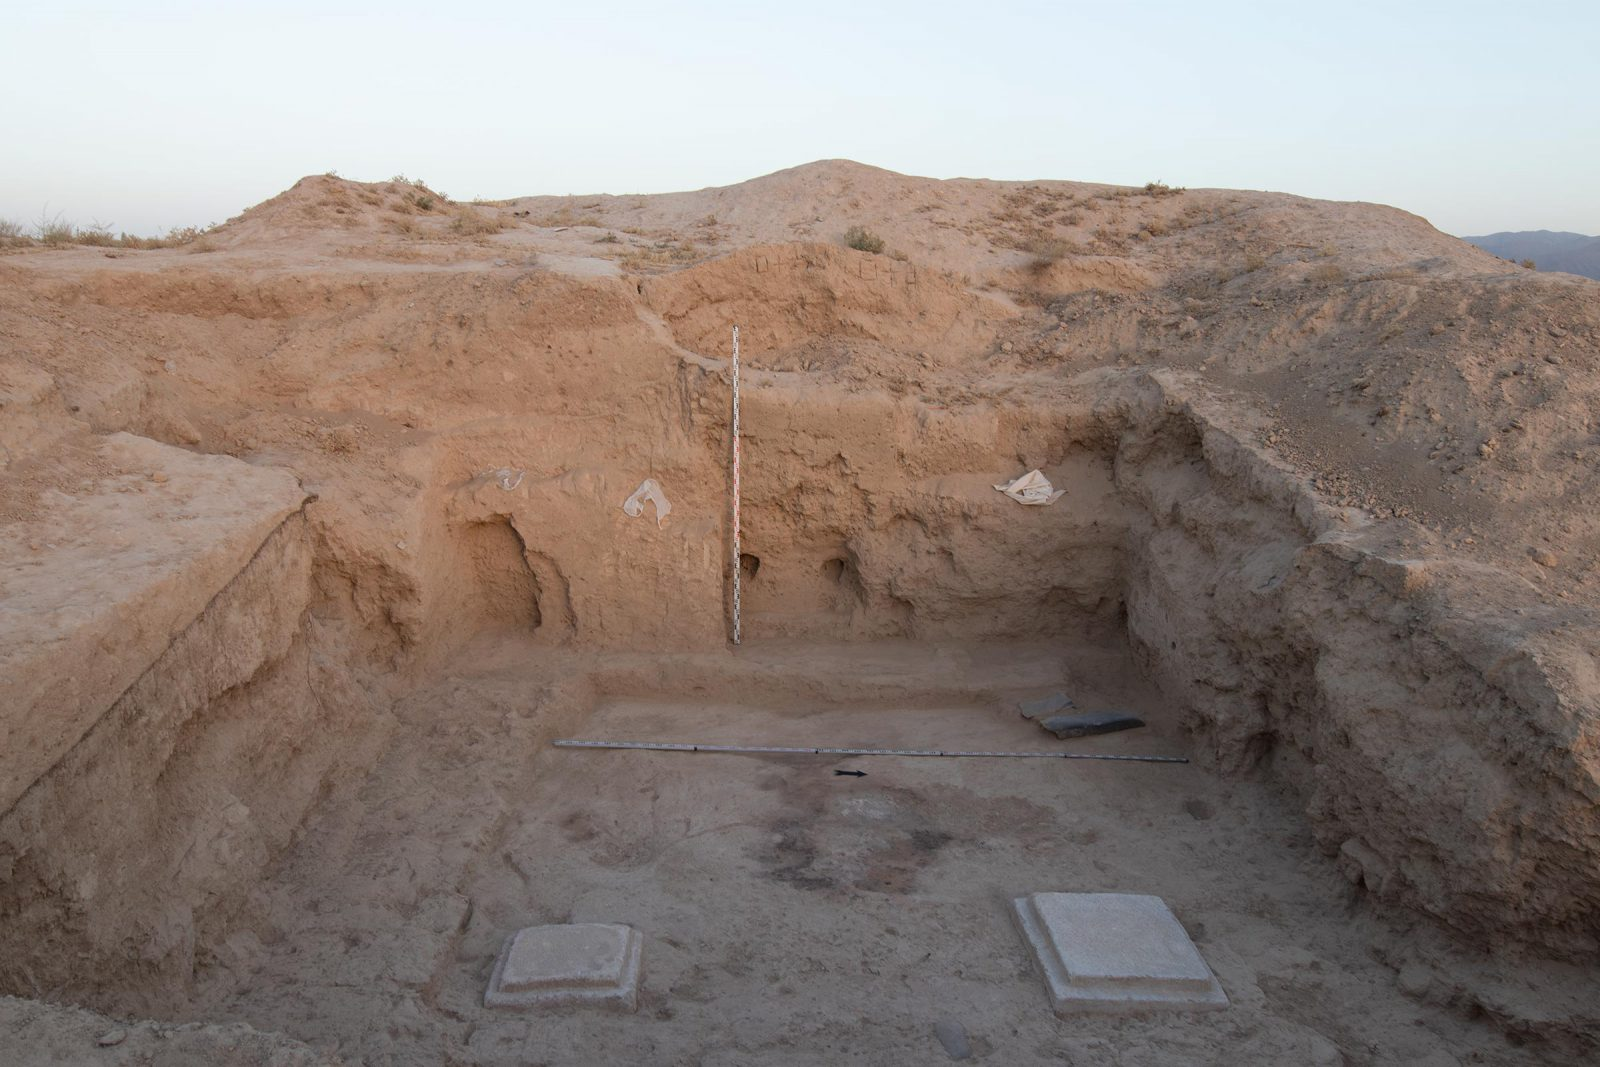 Recent excavation has shown that there may be a third temple, the foundations of which have been found